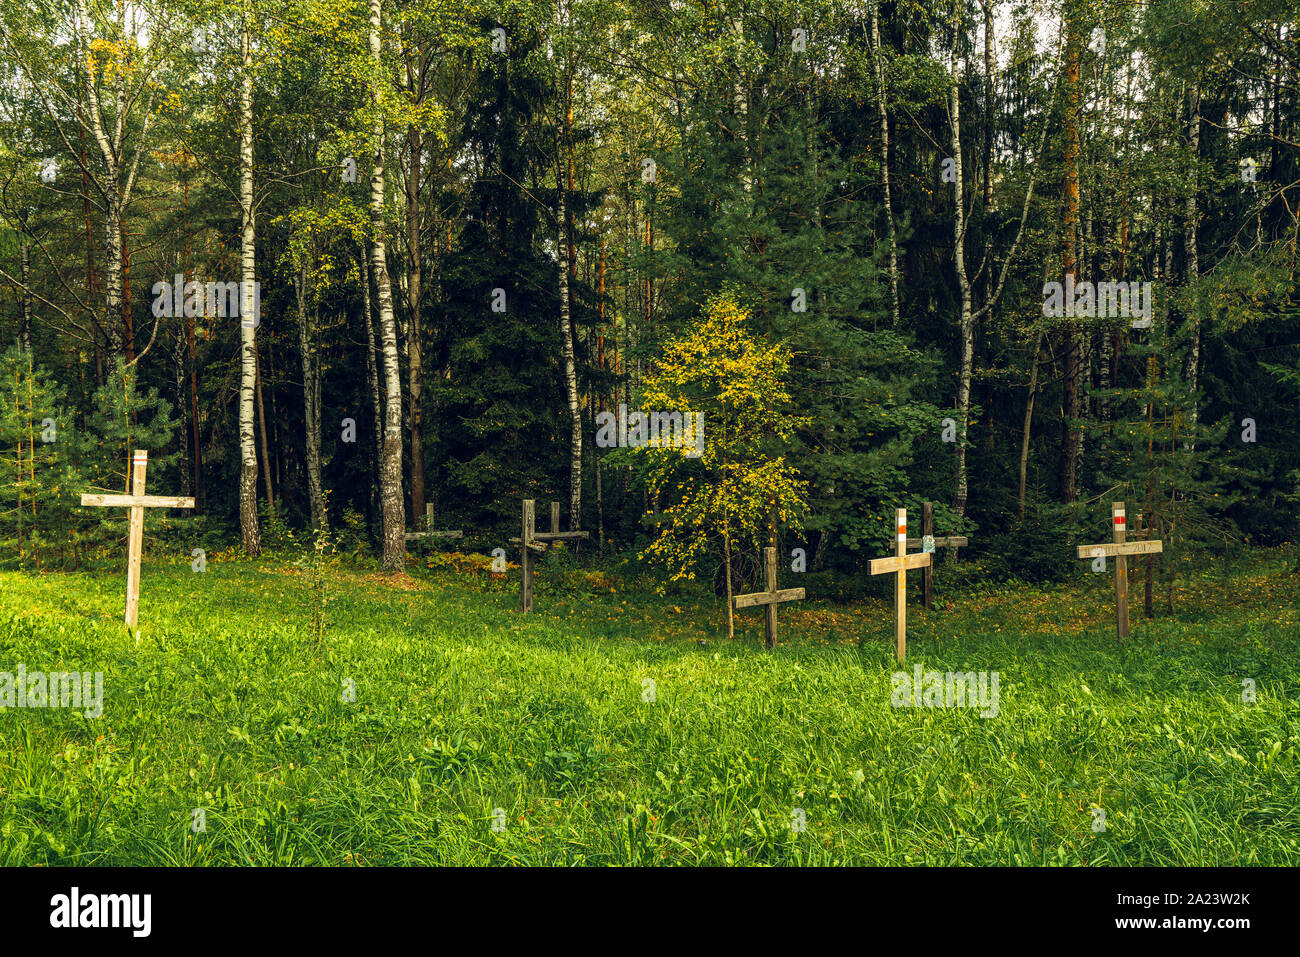 Forest and Crosses at Mass Grave in Kurapaty, near Minsk, Belarus. Place of Mass Executions During Great Purge by NKVD Stock Photo